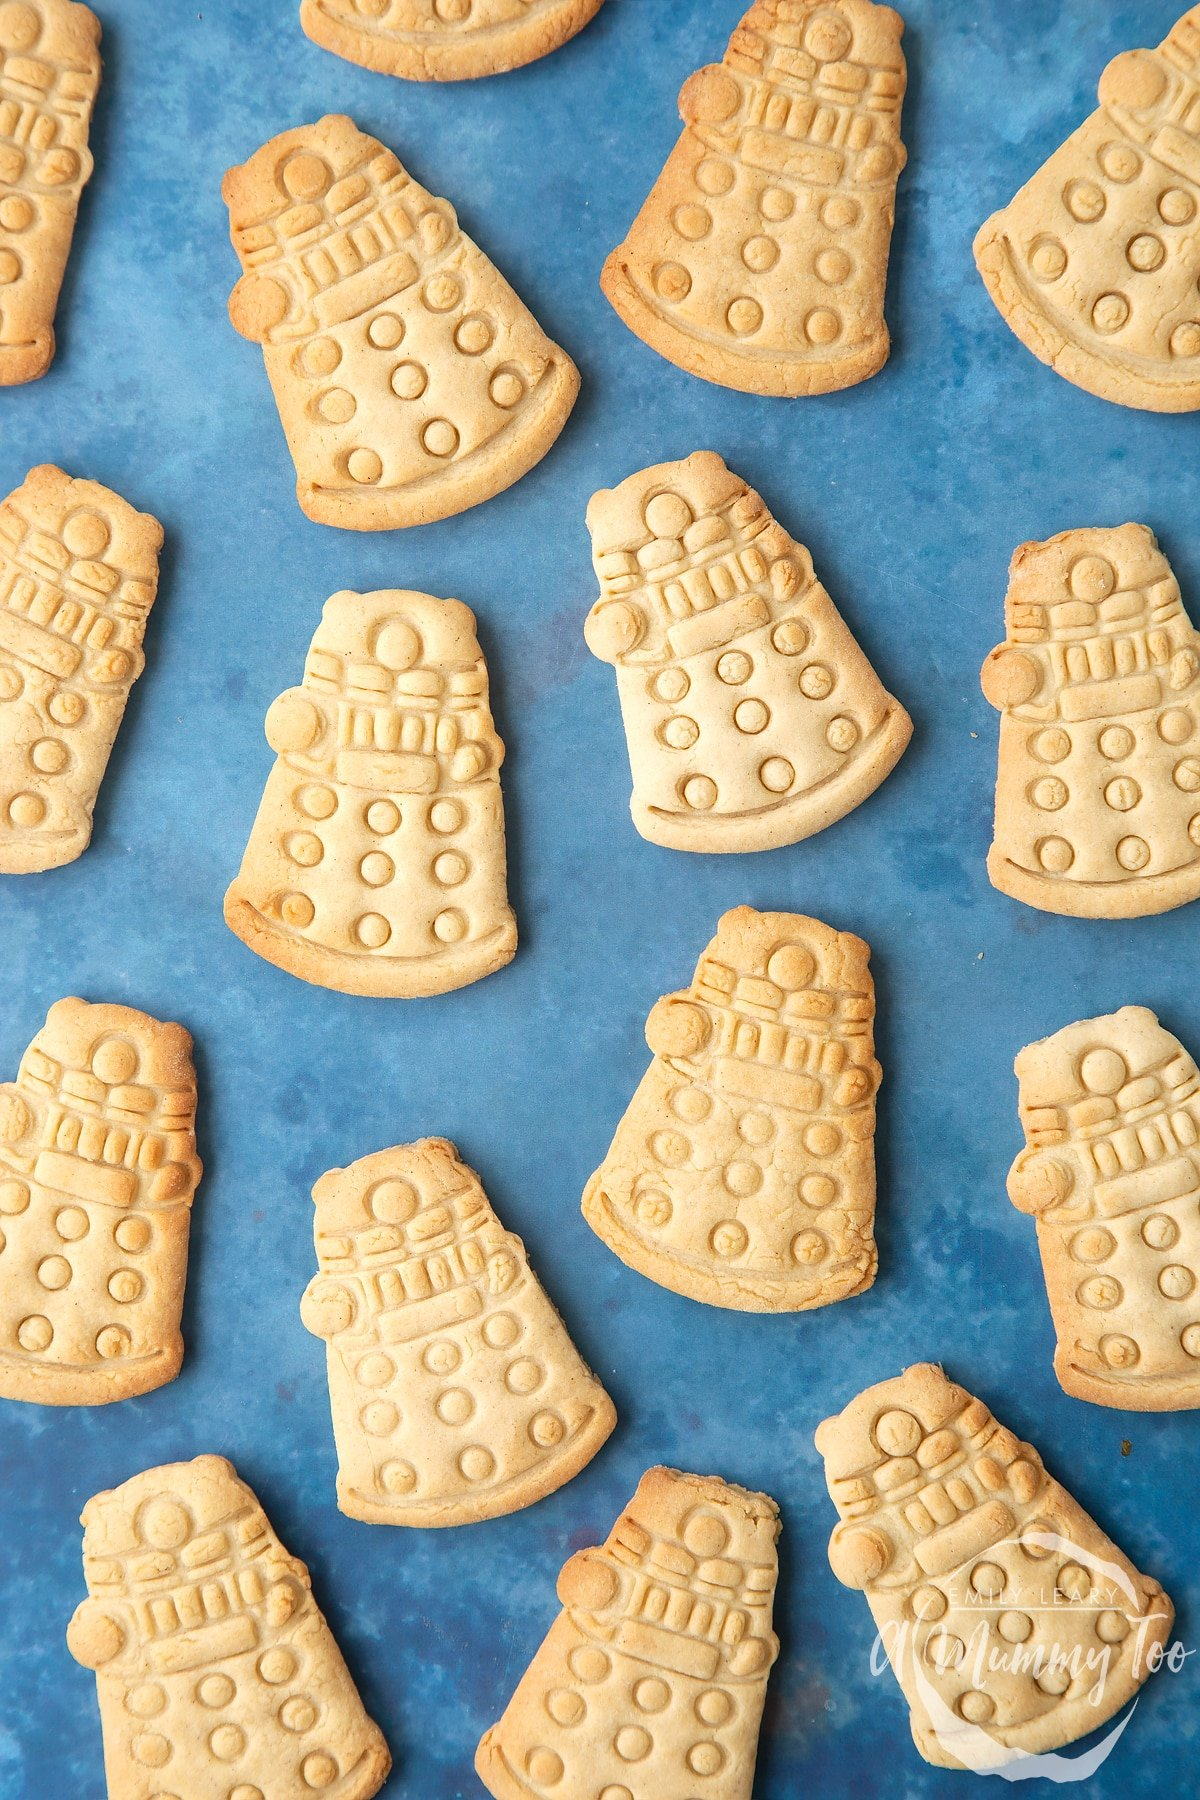 Dalek cookies on a blue background. The cookies are undecorated.